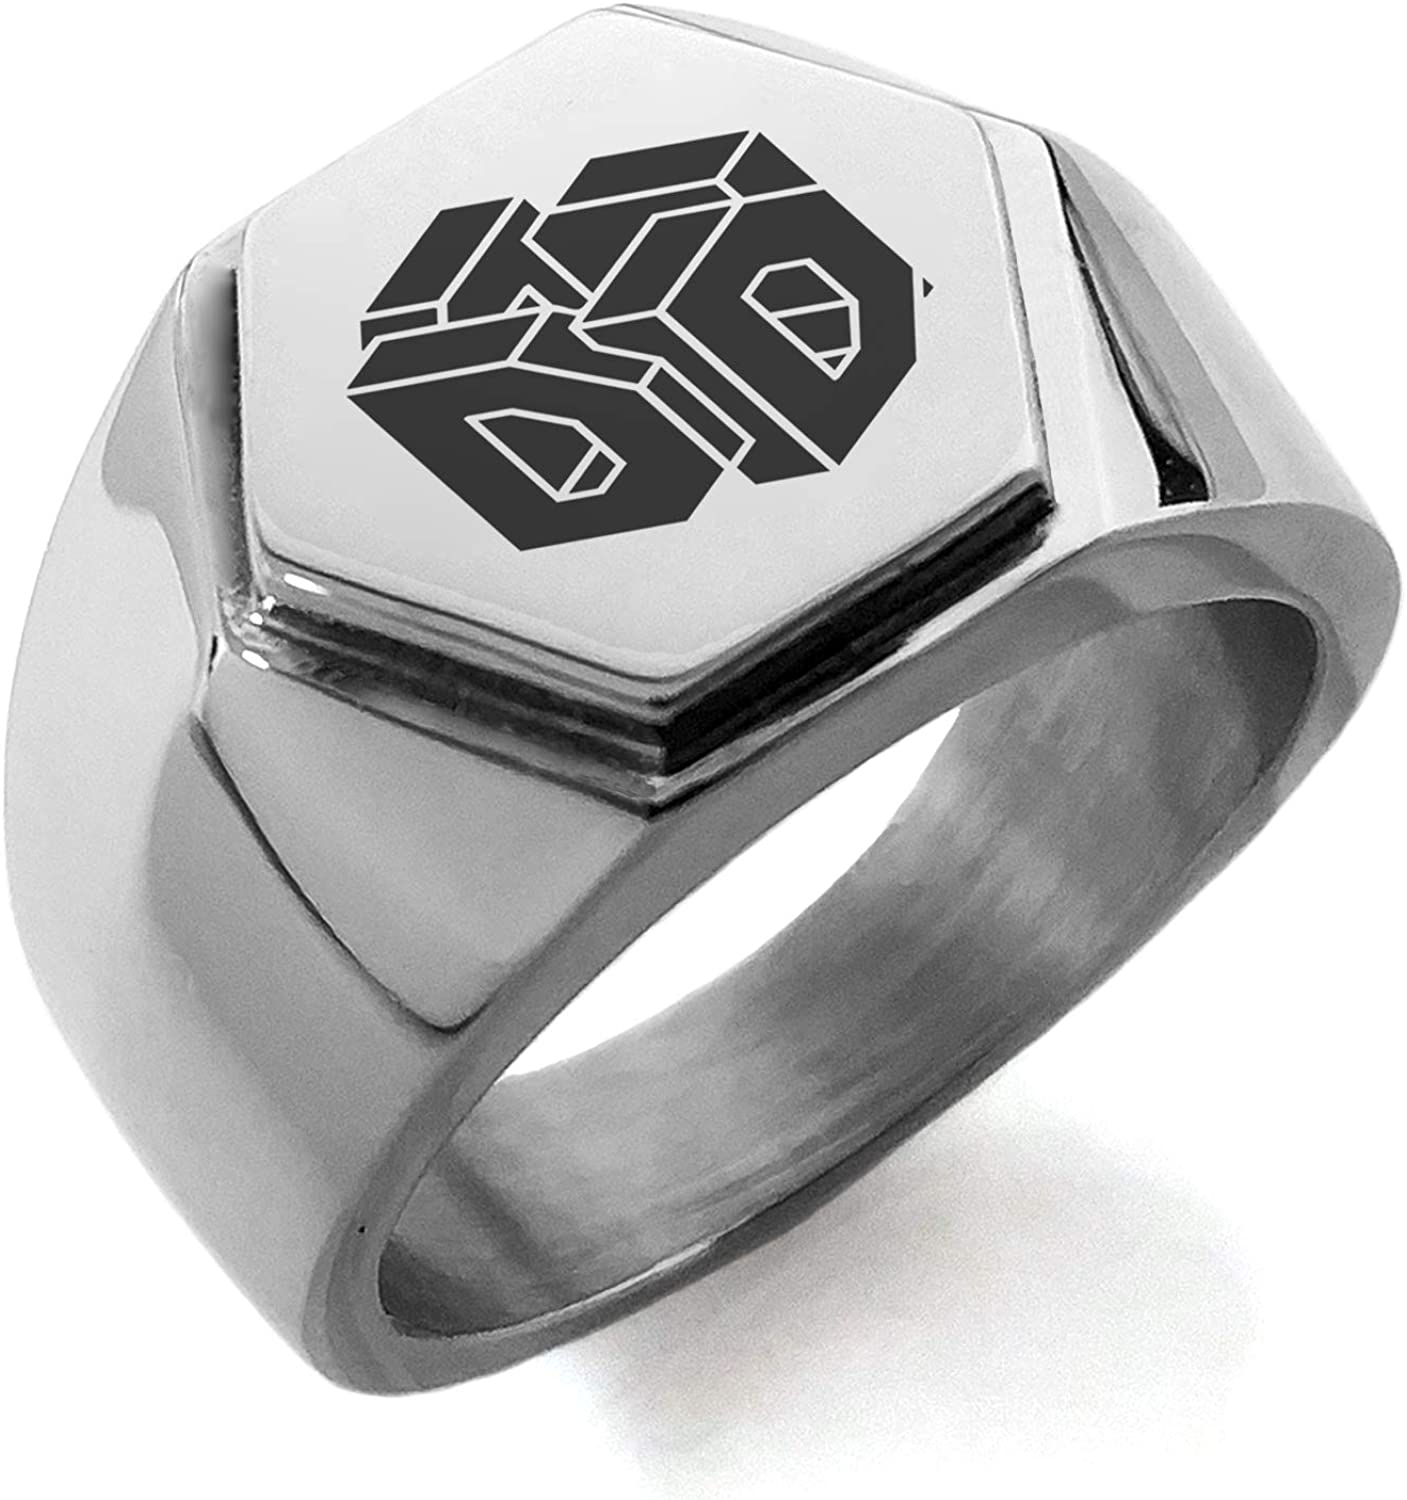 Stainless Steel Letter D Alphabet Initial 3D Cube Box Monogram Hexagon Crest Flat Top Biker Style Polished Ring